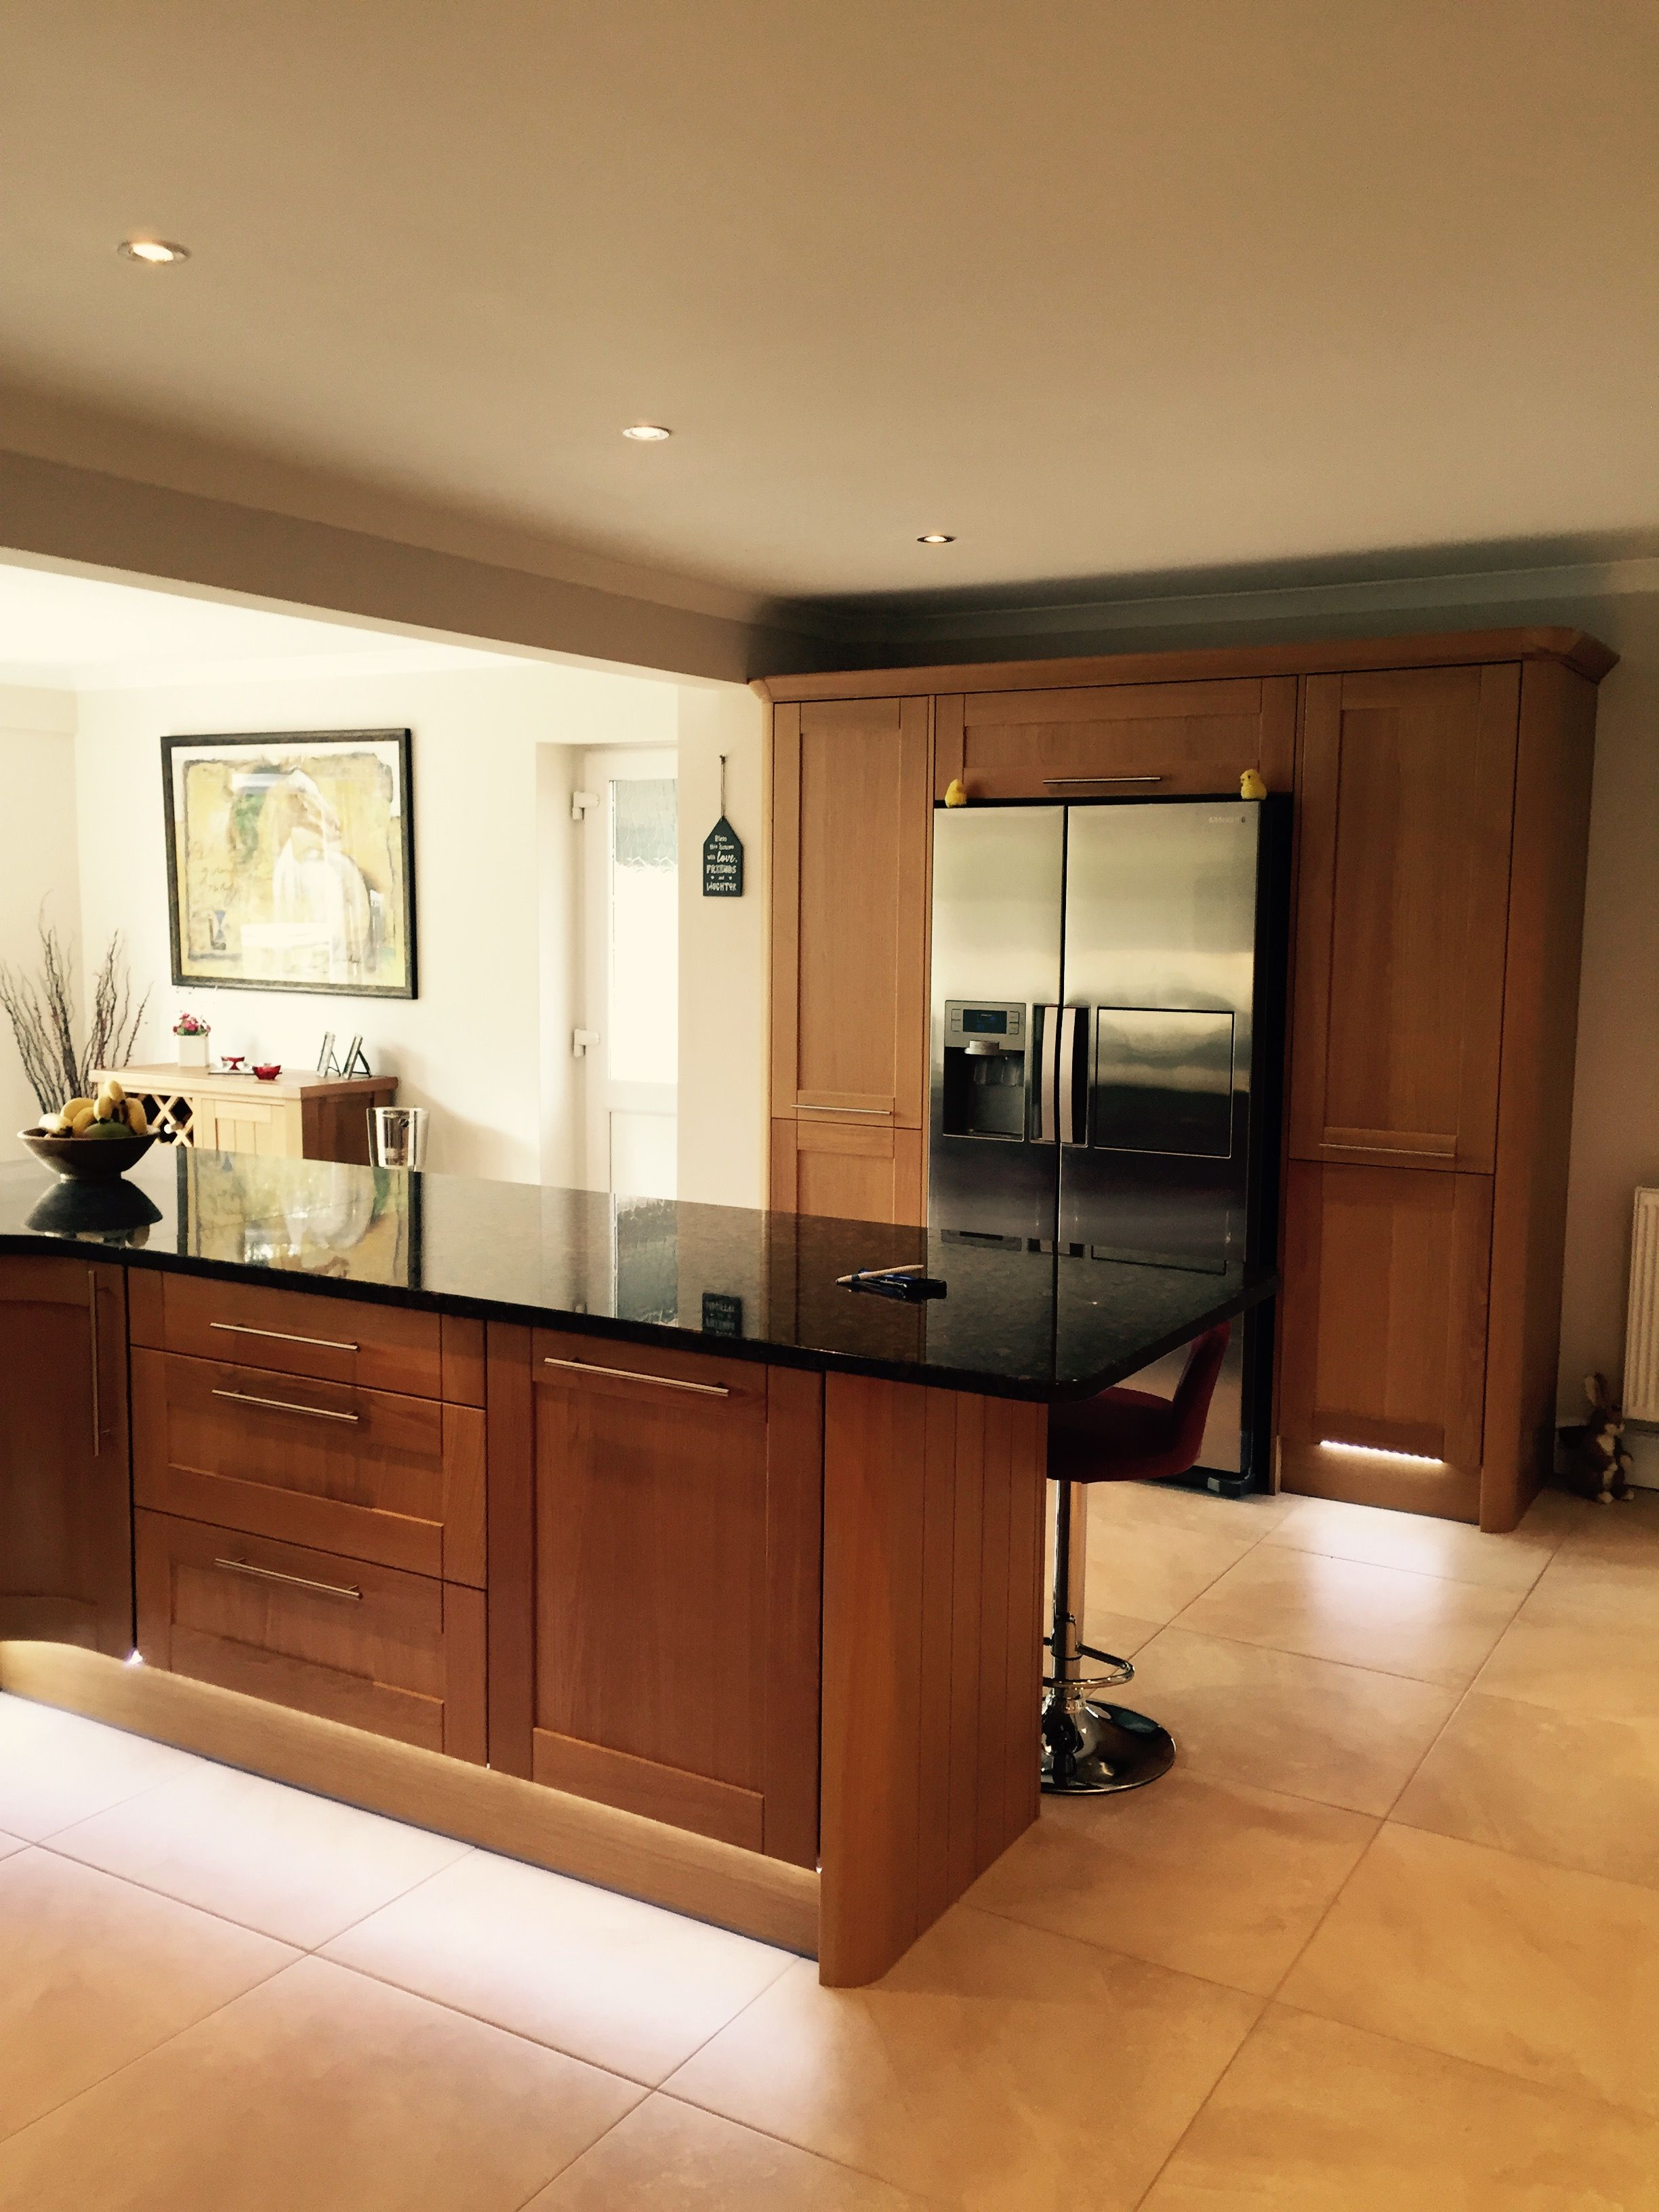 Shaker Light Oak Timber Looks Radiant In This Open Space The - Kitchen plinth lights white